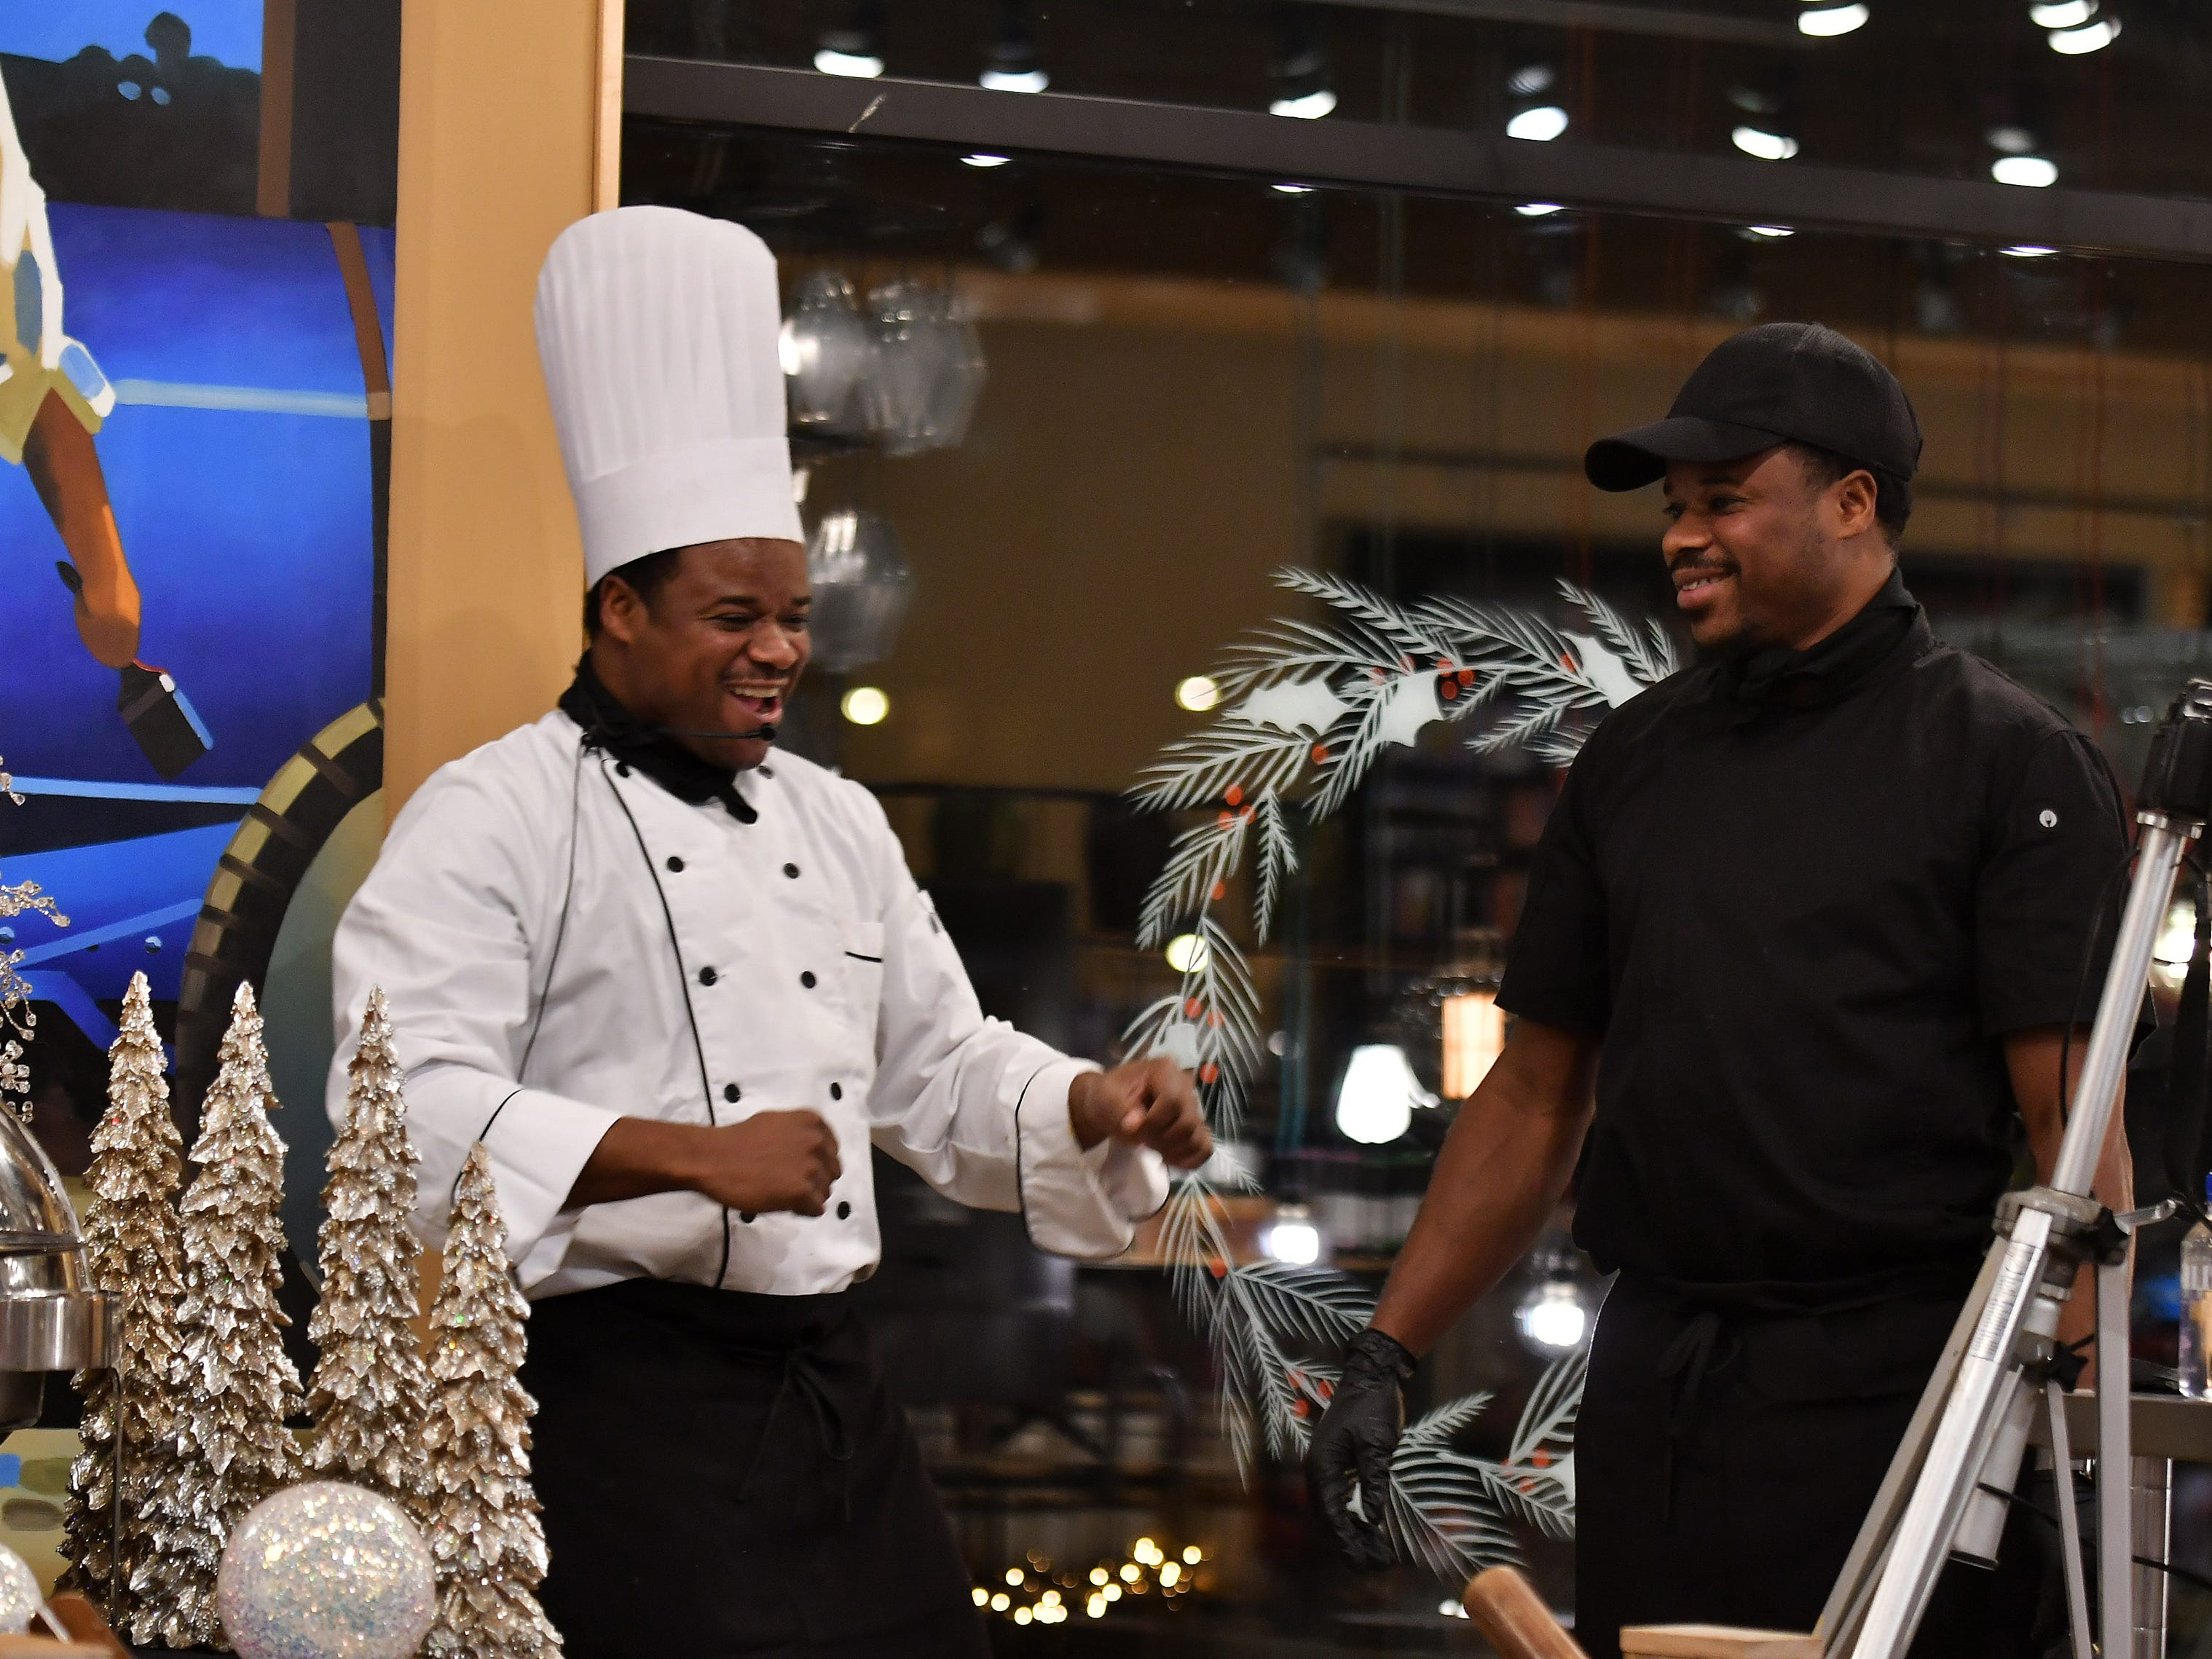 Chef Omar Mitchell, left, and his twin brother, Shimar Mitchell, both from Craft Creative Catering after they created decorative buffet tables.